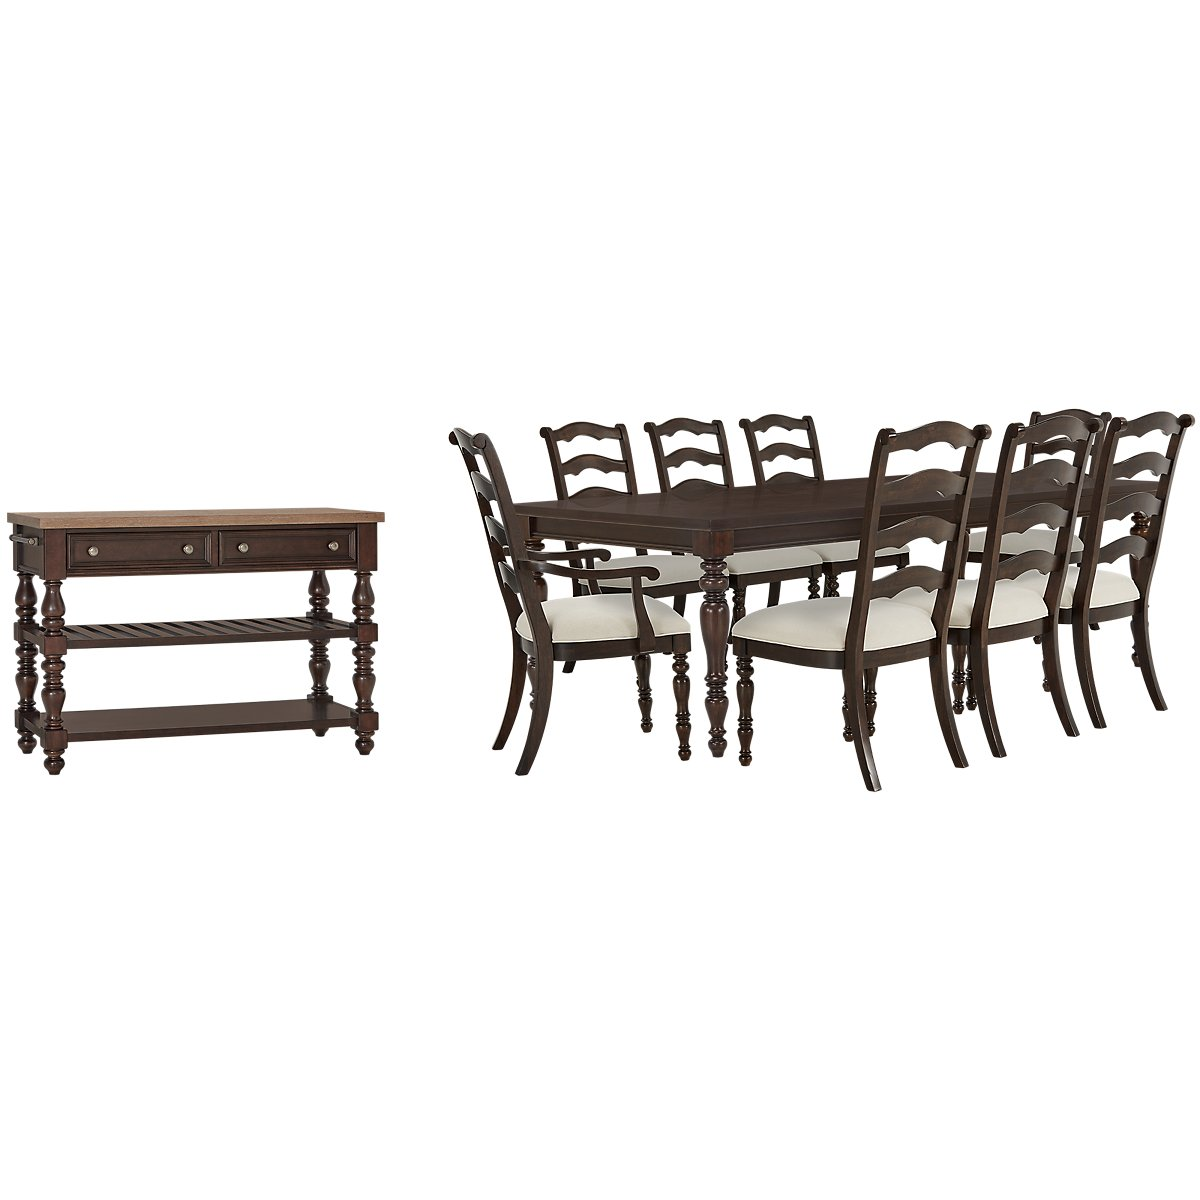 Savannah Dark Tone Wood Rect Dining Room